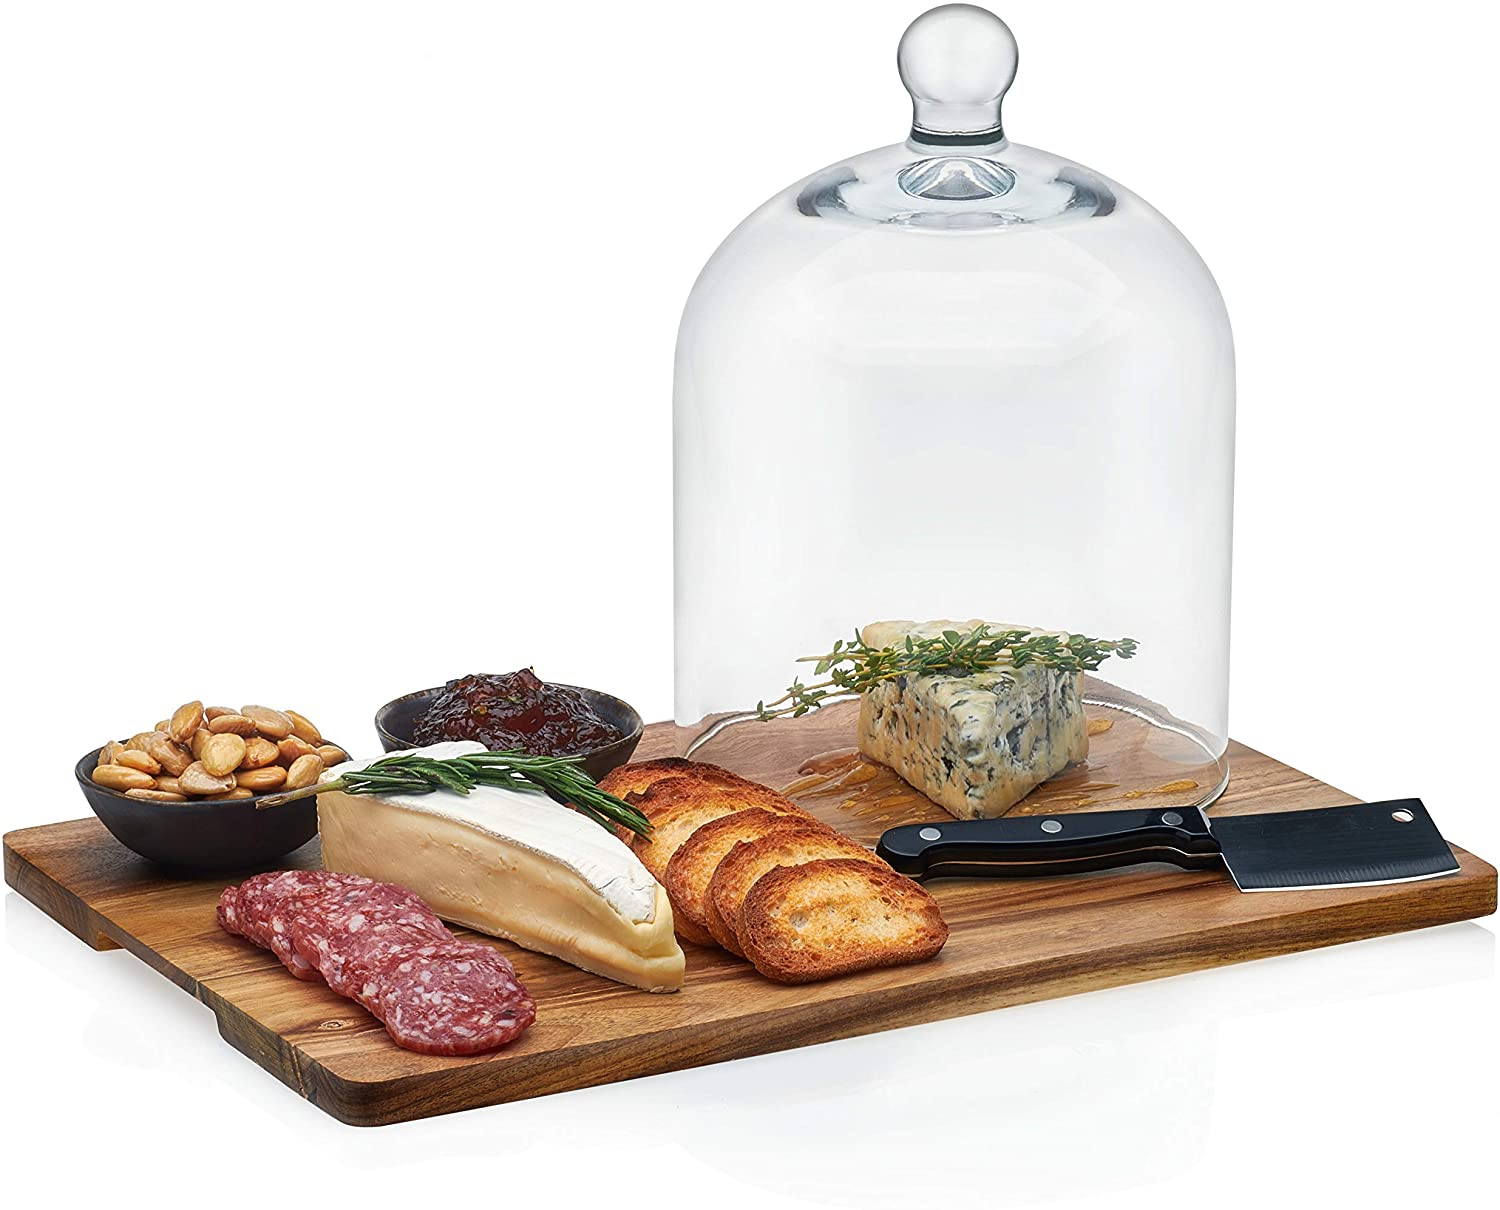 Libby cheese platter amazon